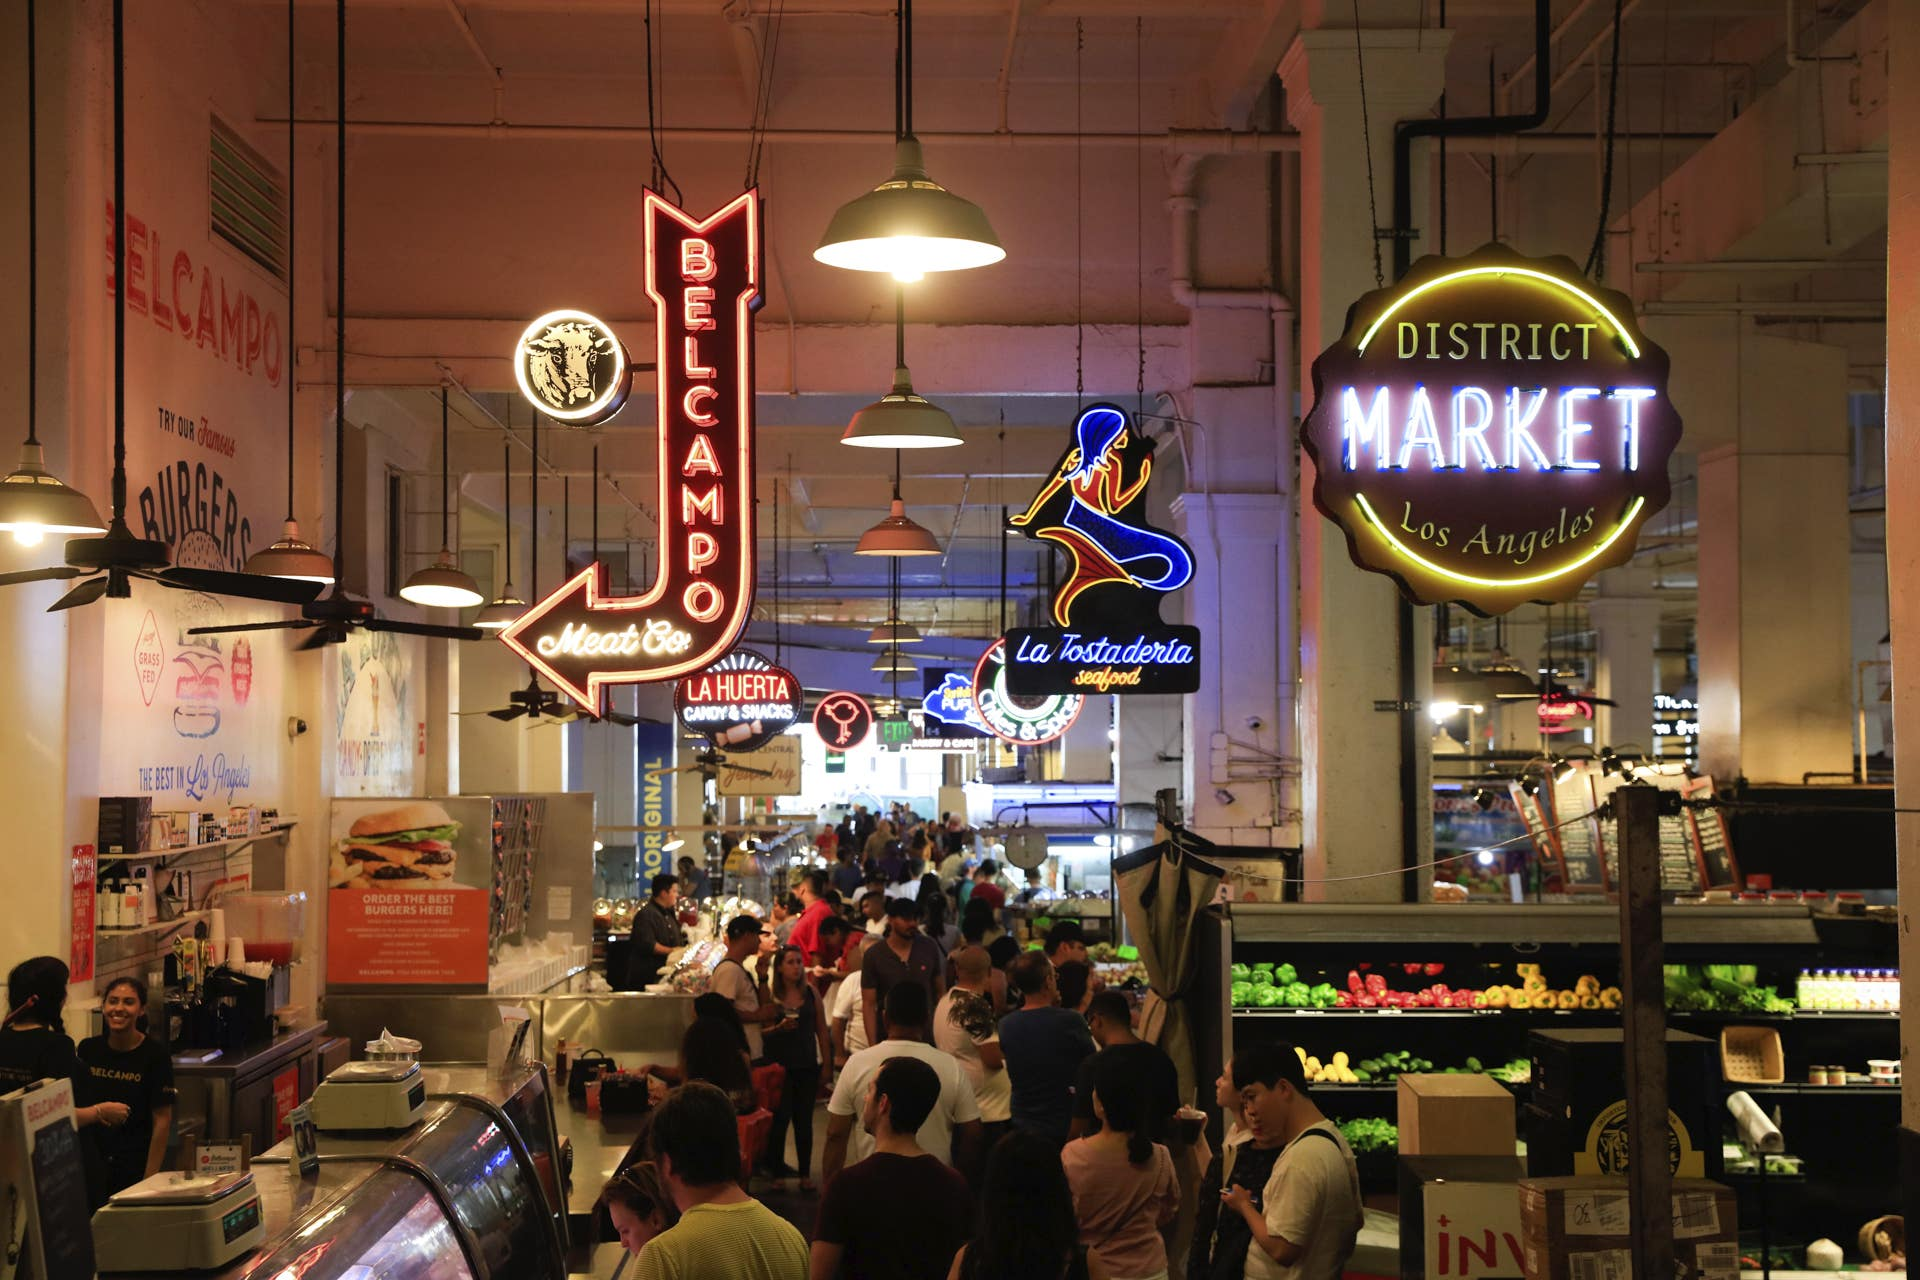 Grand Central Market in Downtown LA